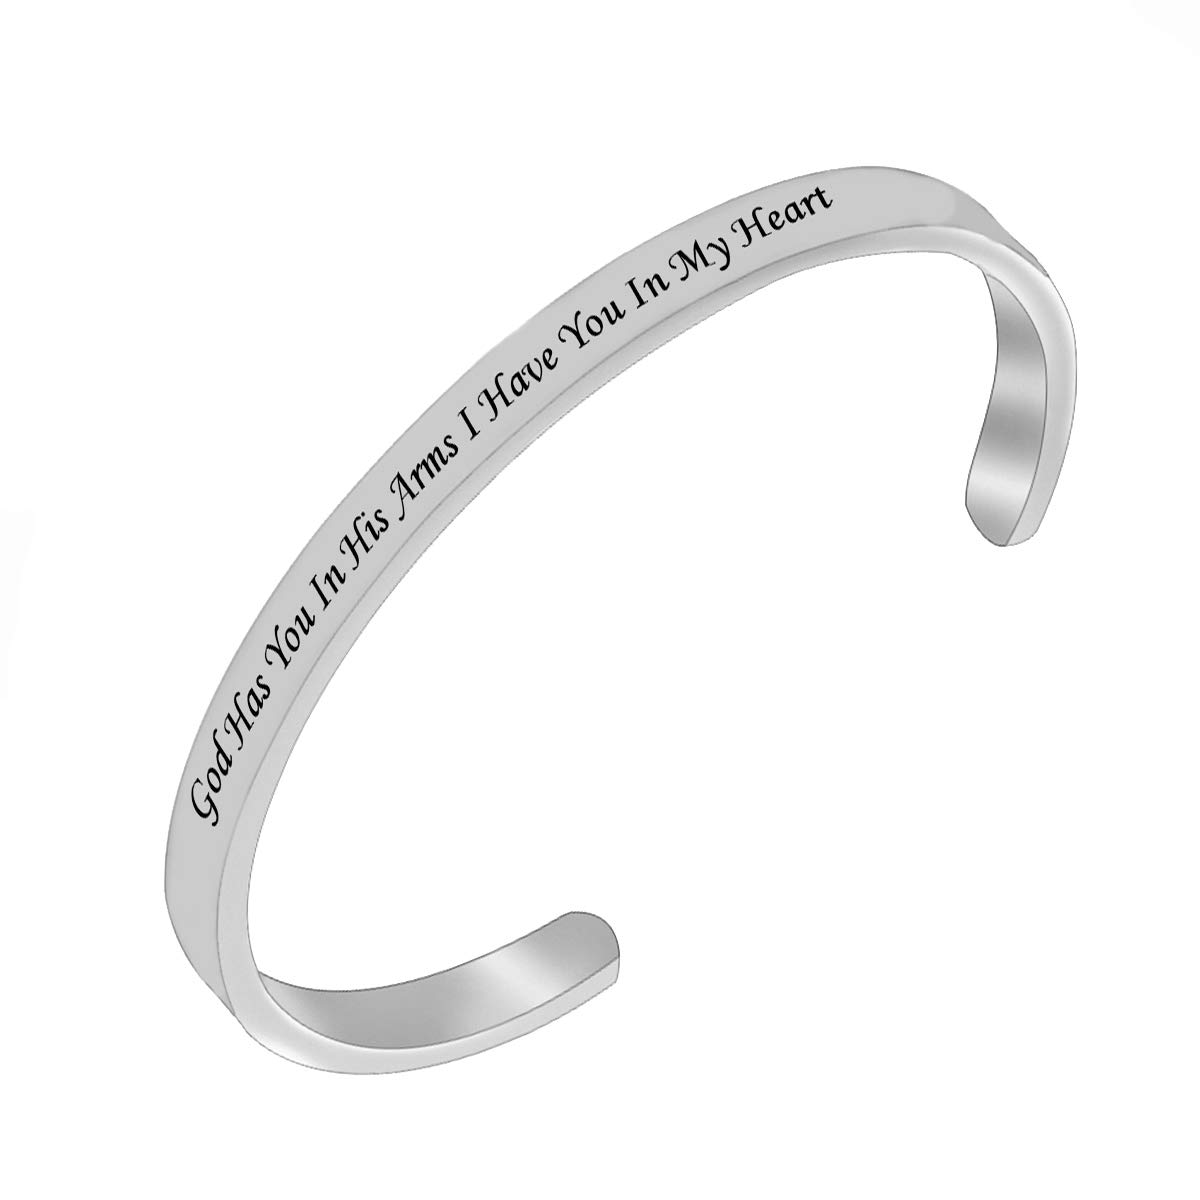 RUNXINTD Memorial Bracelet Sympathy Gift God has you in his arms,I have you in my Heart Bracelet Loss of Loved One Bracelet,Remembrance Cuff Bracelet (Silver-Cuff Bracelet)